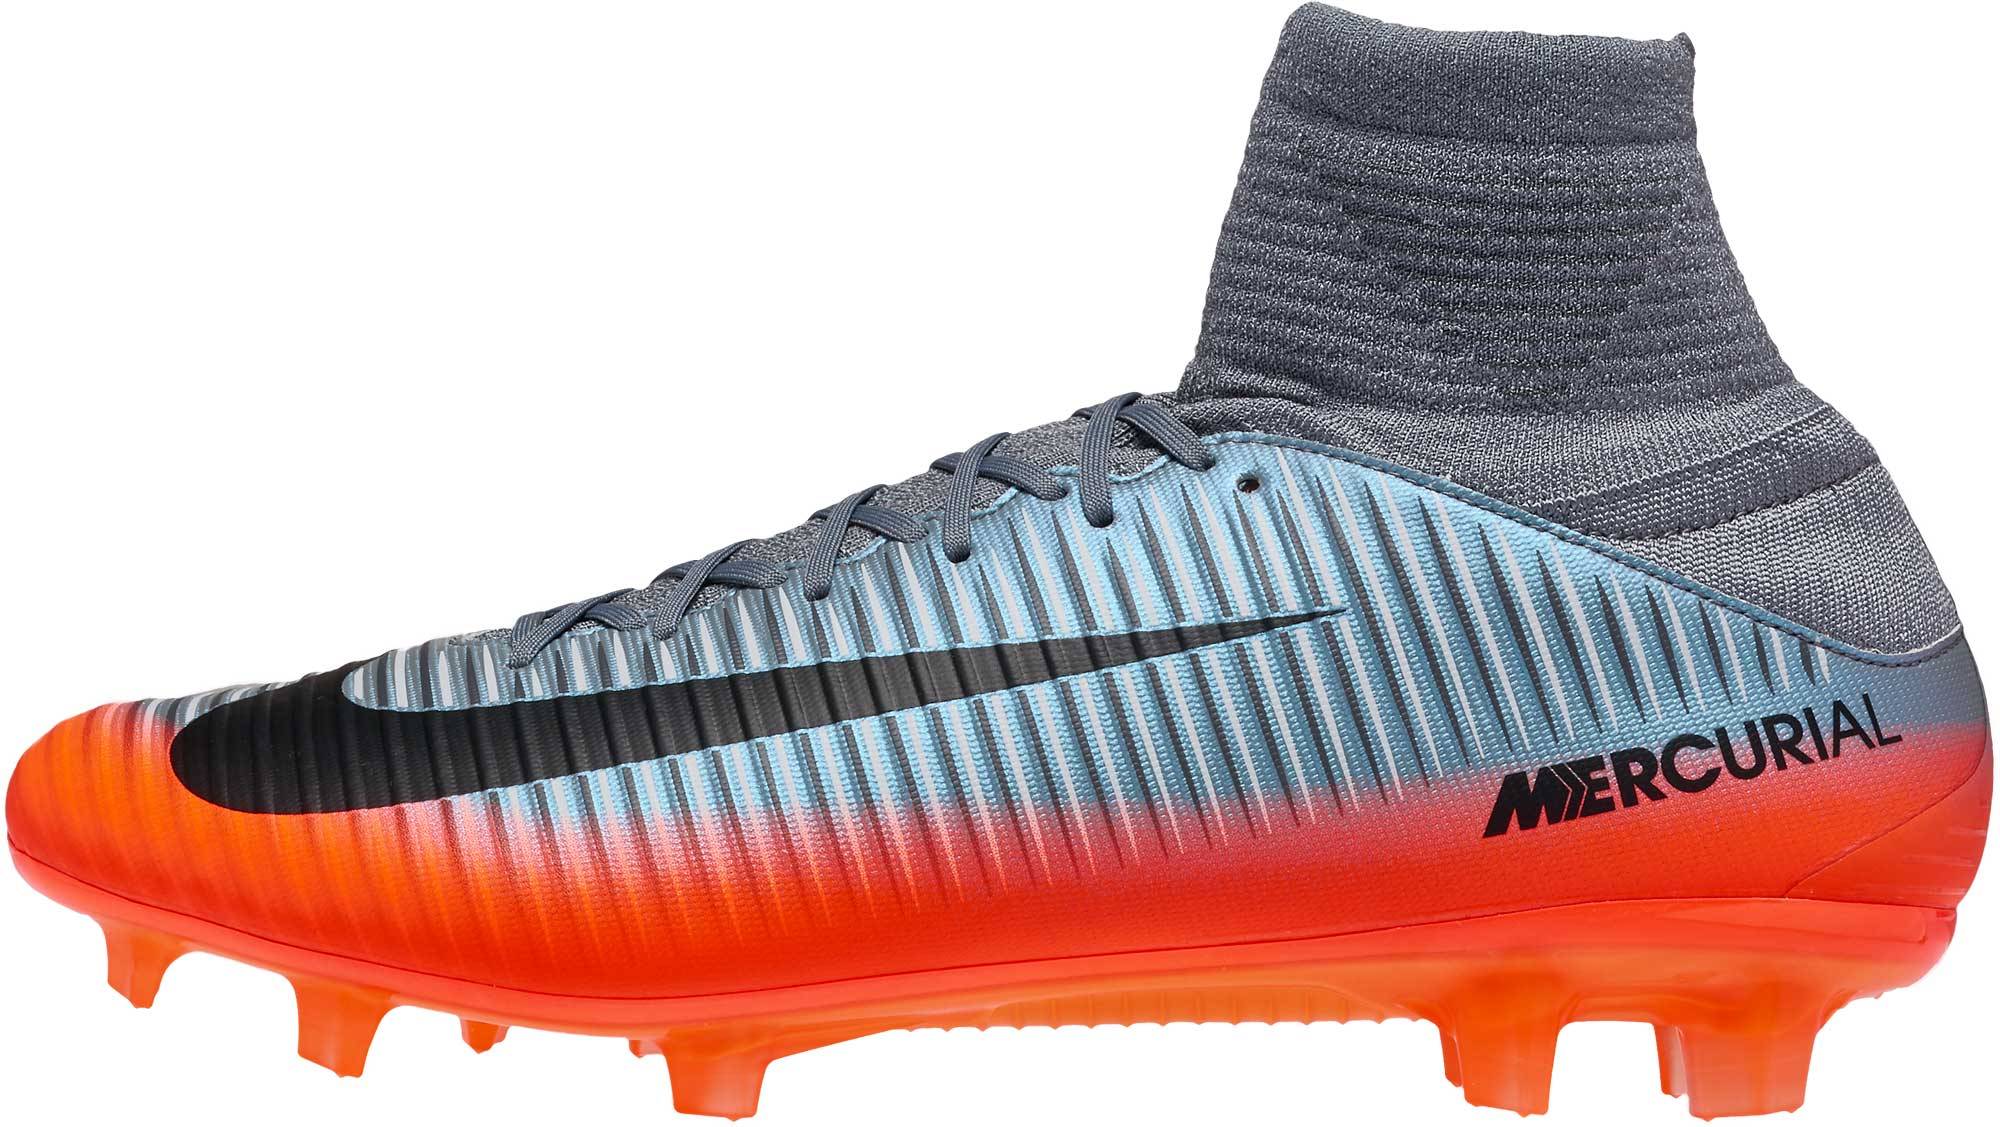 182793f11257 Nike Mercurial Veloce III DF FG Soccer Cleats - CR7 - Cool Grey ...